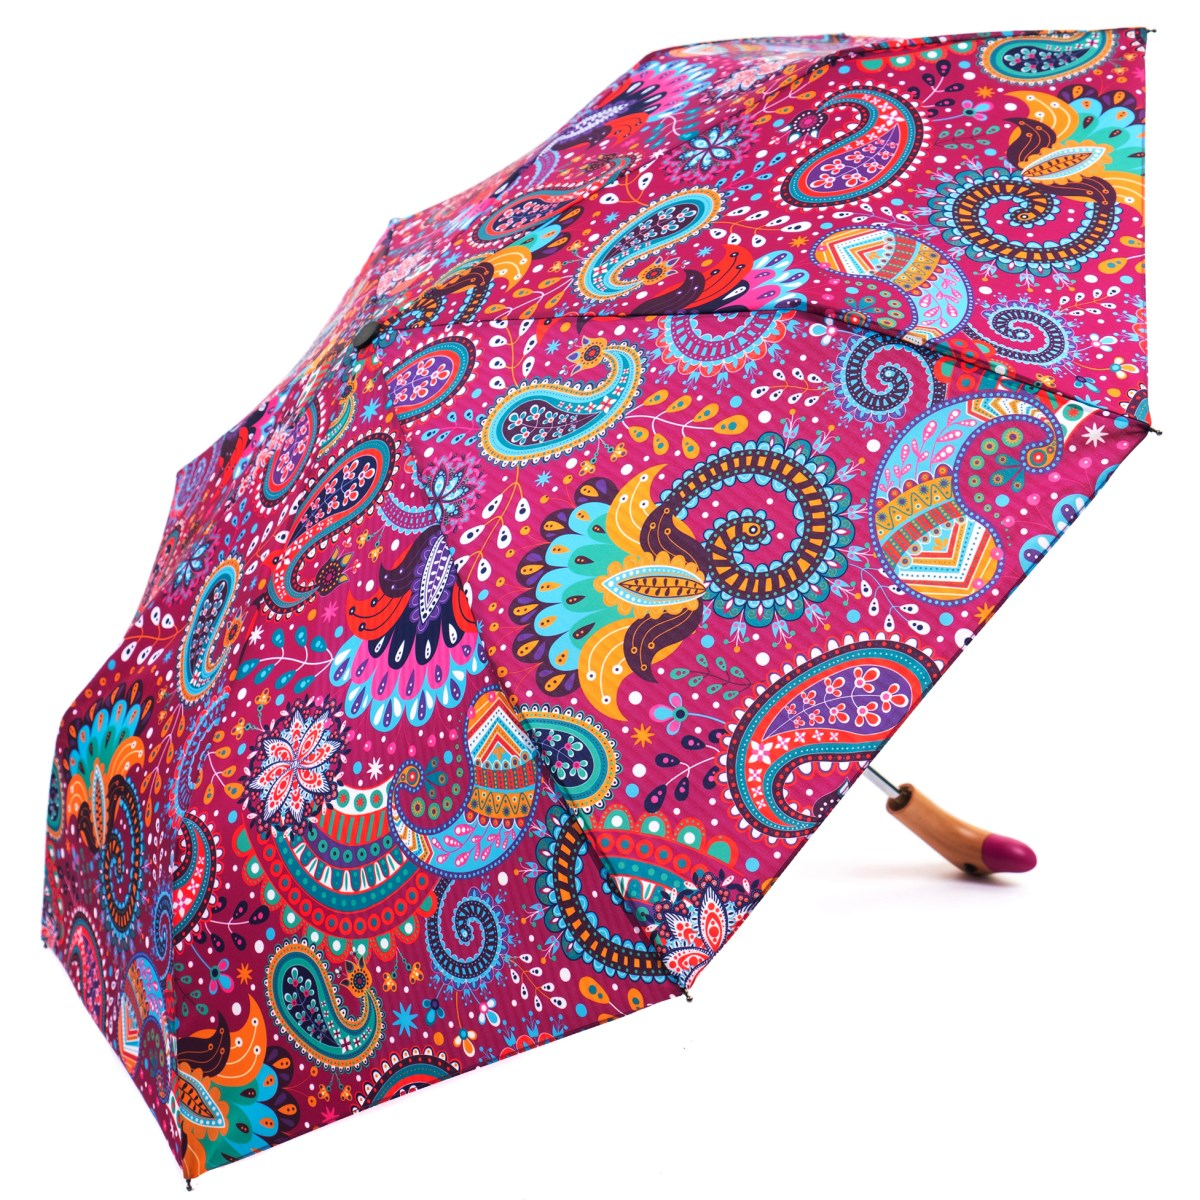 Click to view Paisley Print Wooden Duck Head Handle Ladies Compact Umbrella (3489)